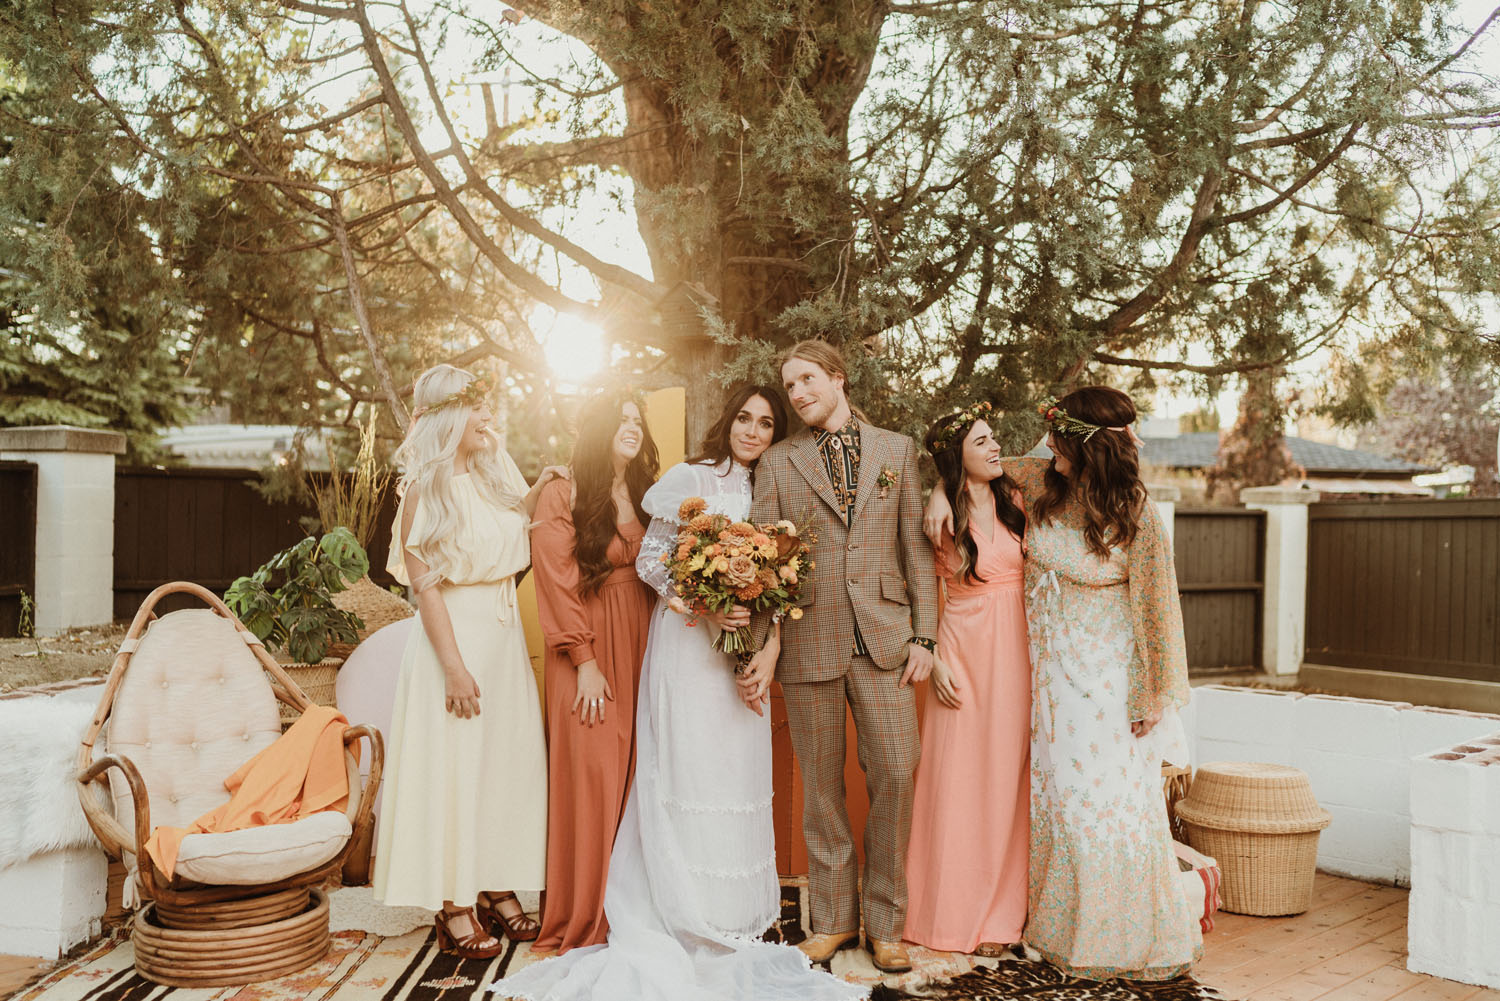 Vintage Fashion For All + '70s-Inspired Backyard Wedding Ideas